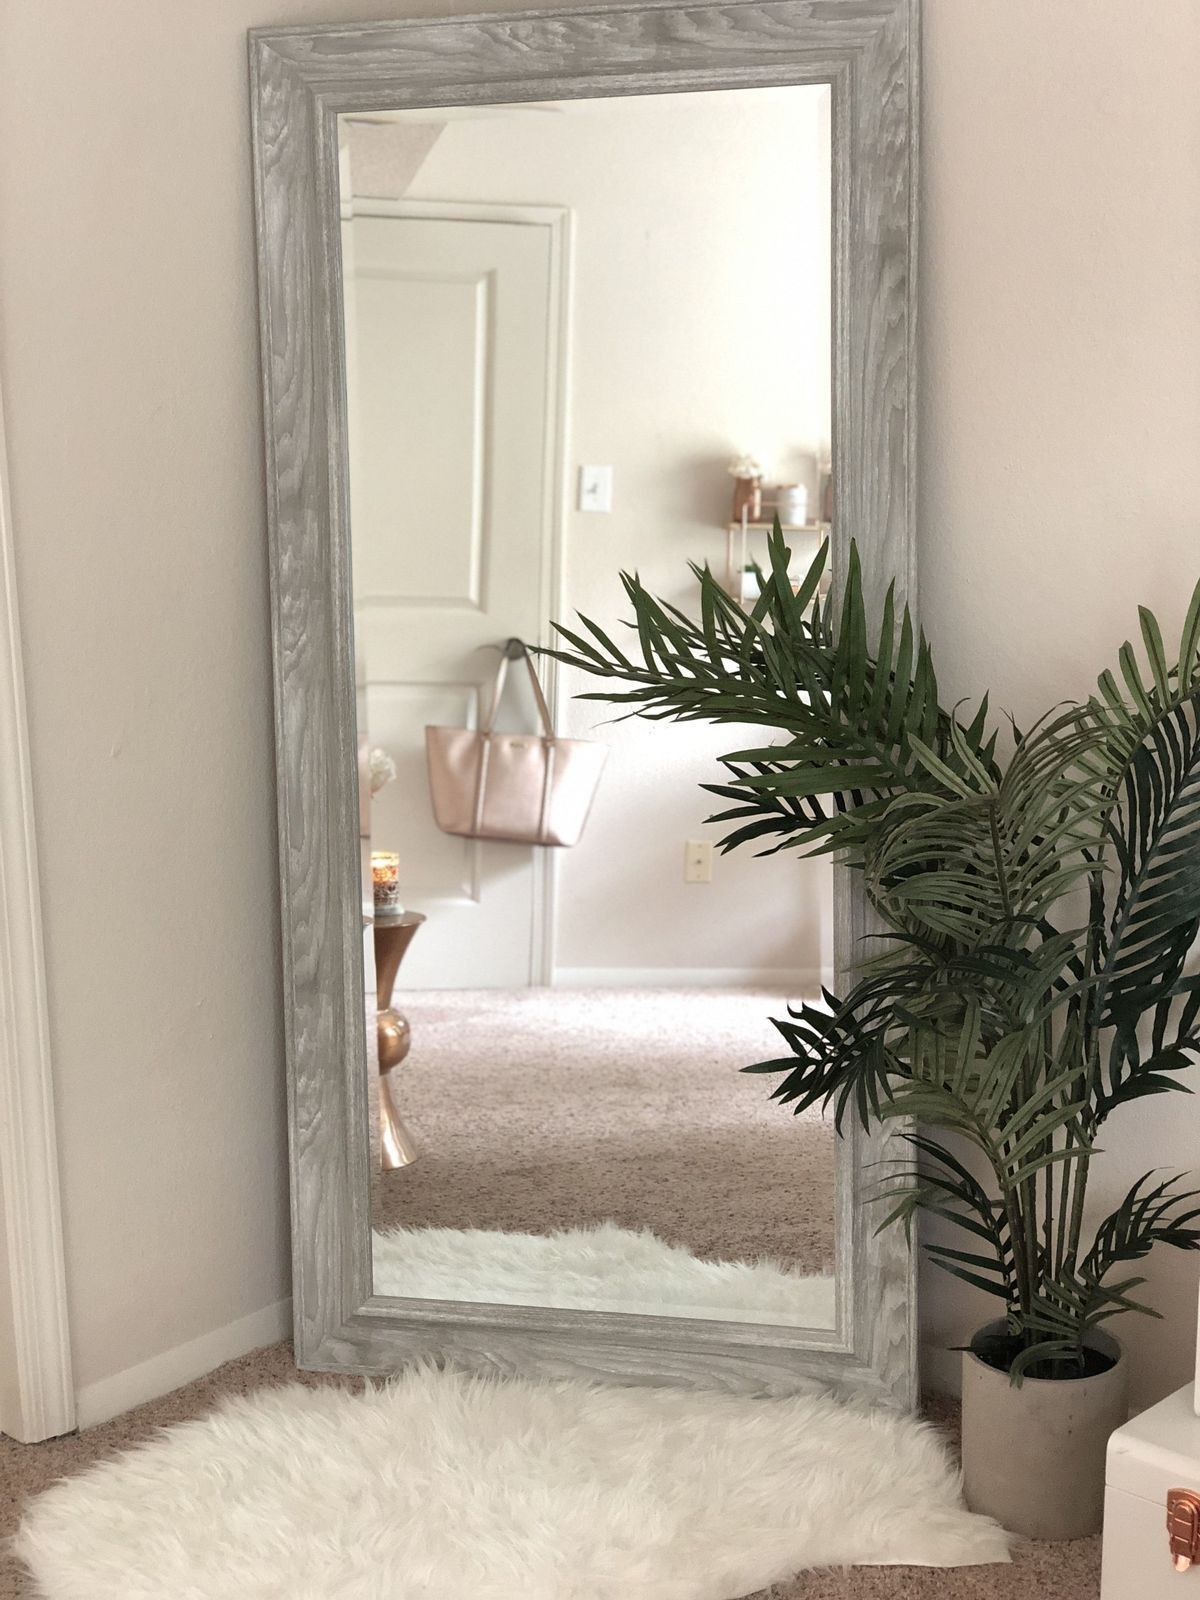 Floor Mirror In Bedroom Big Mirror For Bedroom Possibly In The Small Useless Corner That I Will Have In 2021 Floor Mirror Living Room Wall Mirror Decor Living Room Mirror Wall Bedroom Floor mirror in living room